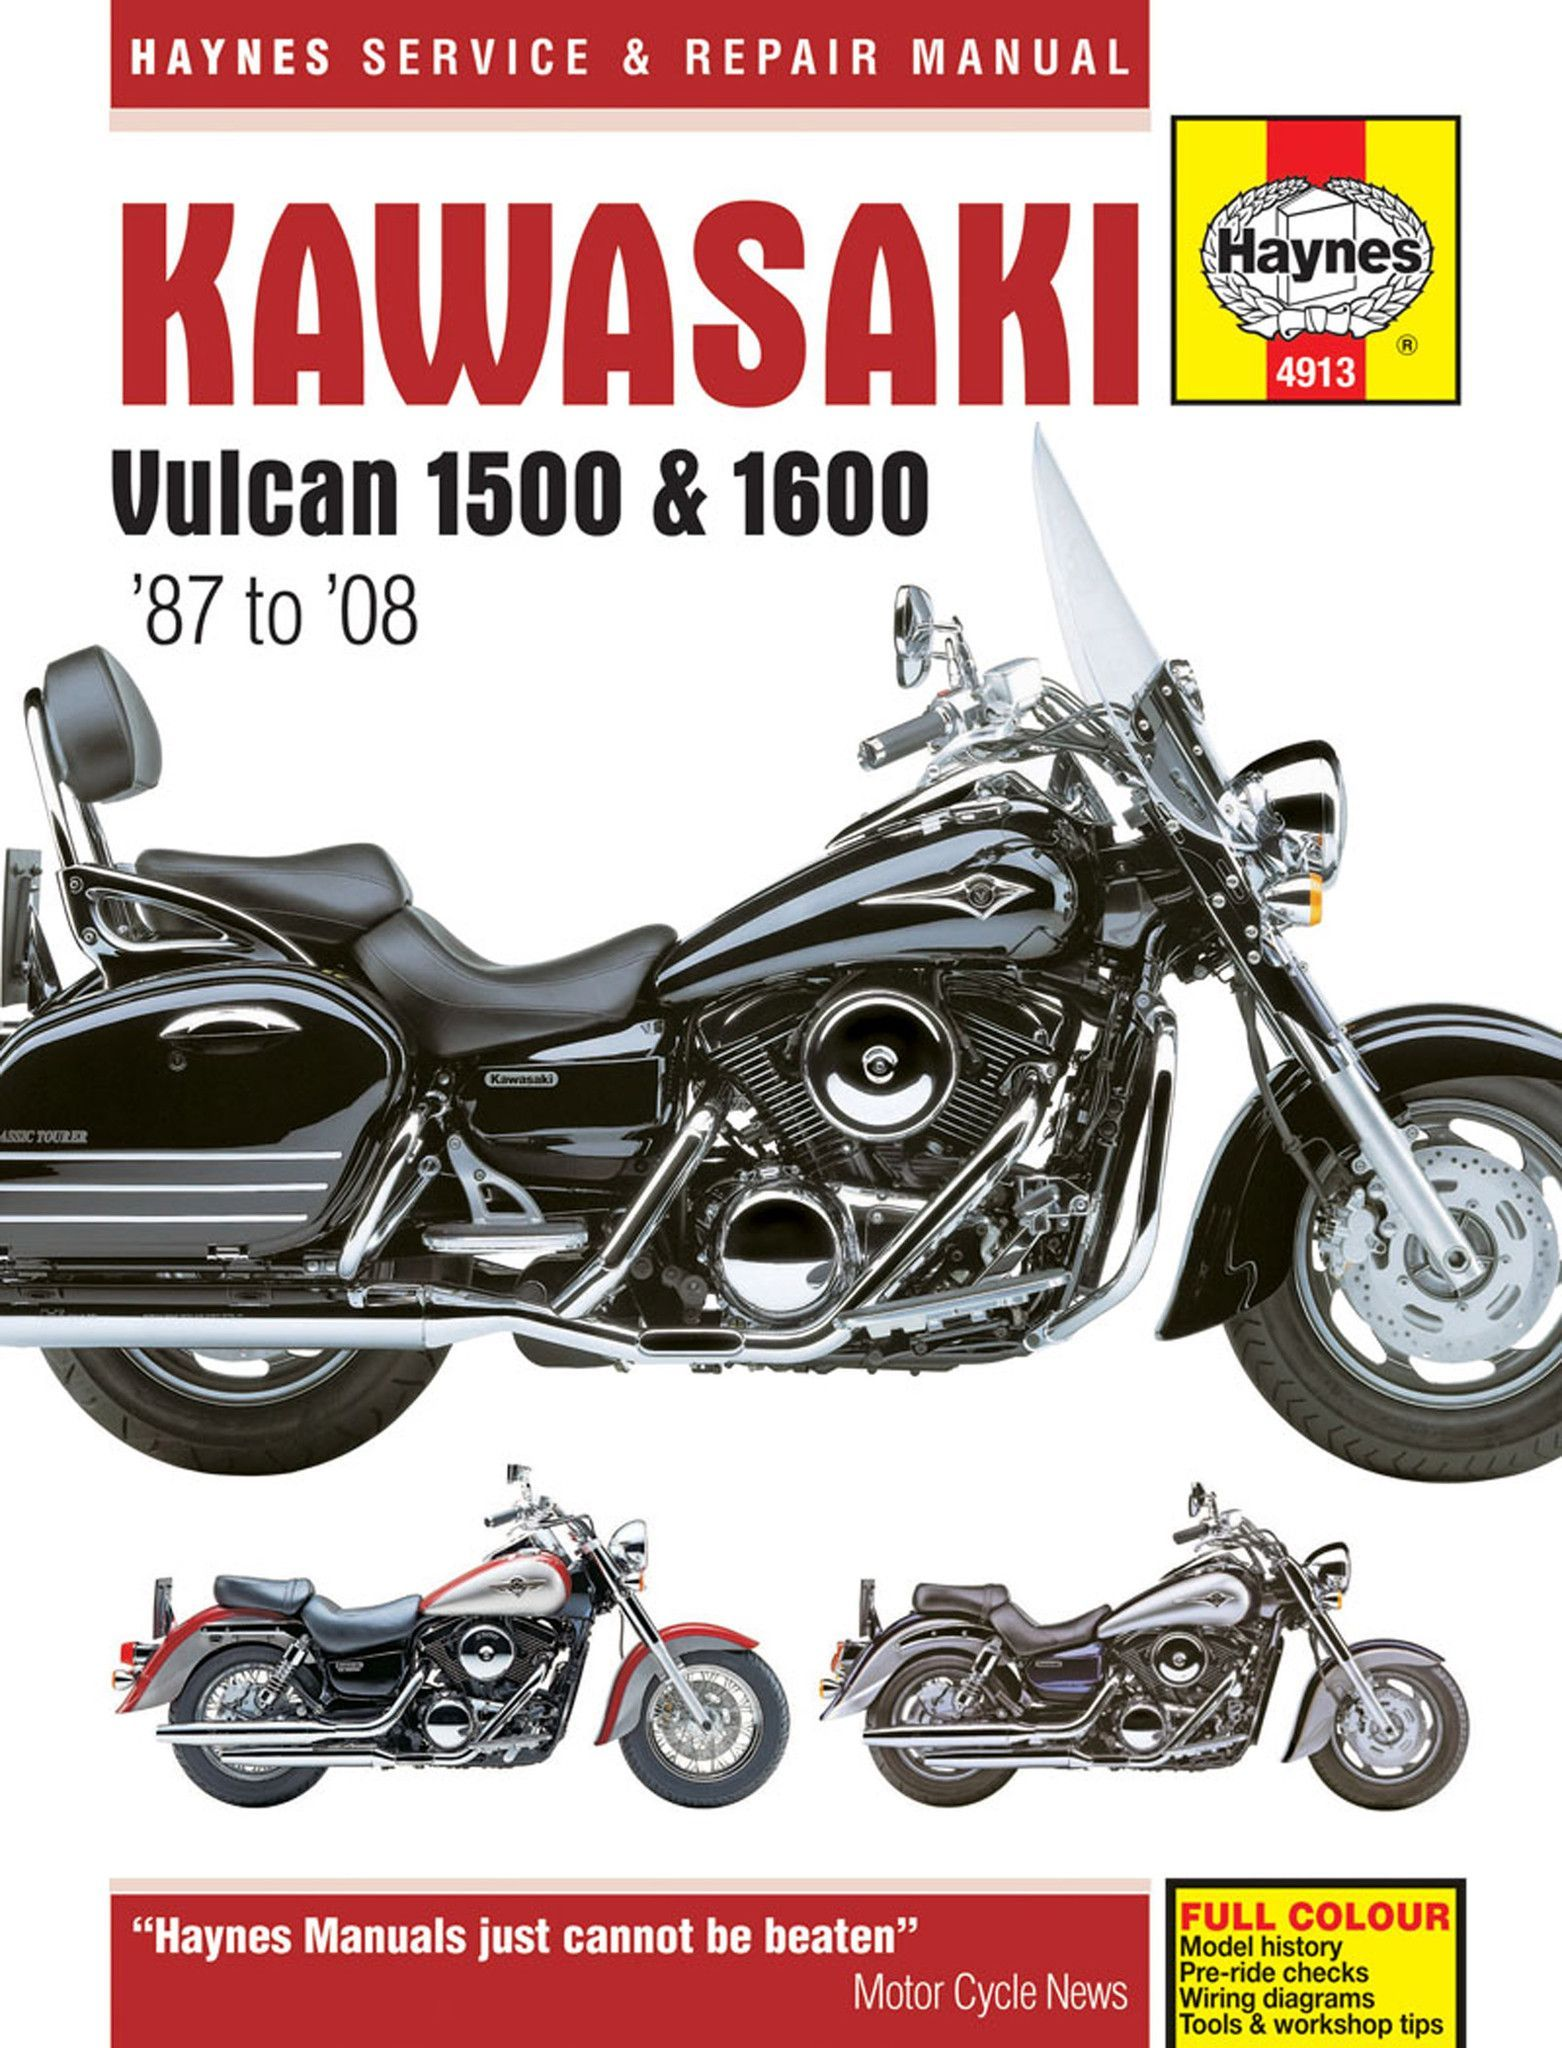 haynes m4913 service repair manual for kawasaki vulcan 1500 and rh pinterest com 2009 Kawasaki 1700 Nomad 2014 Kawasaki Vulcan